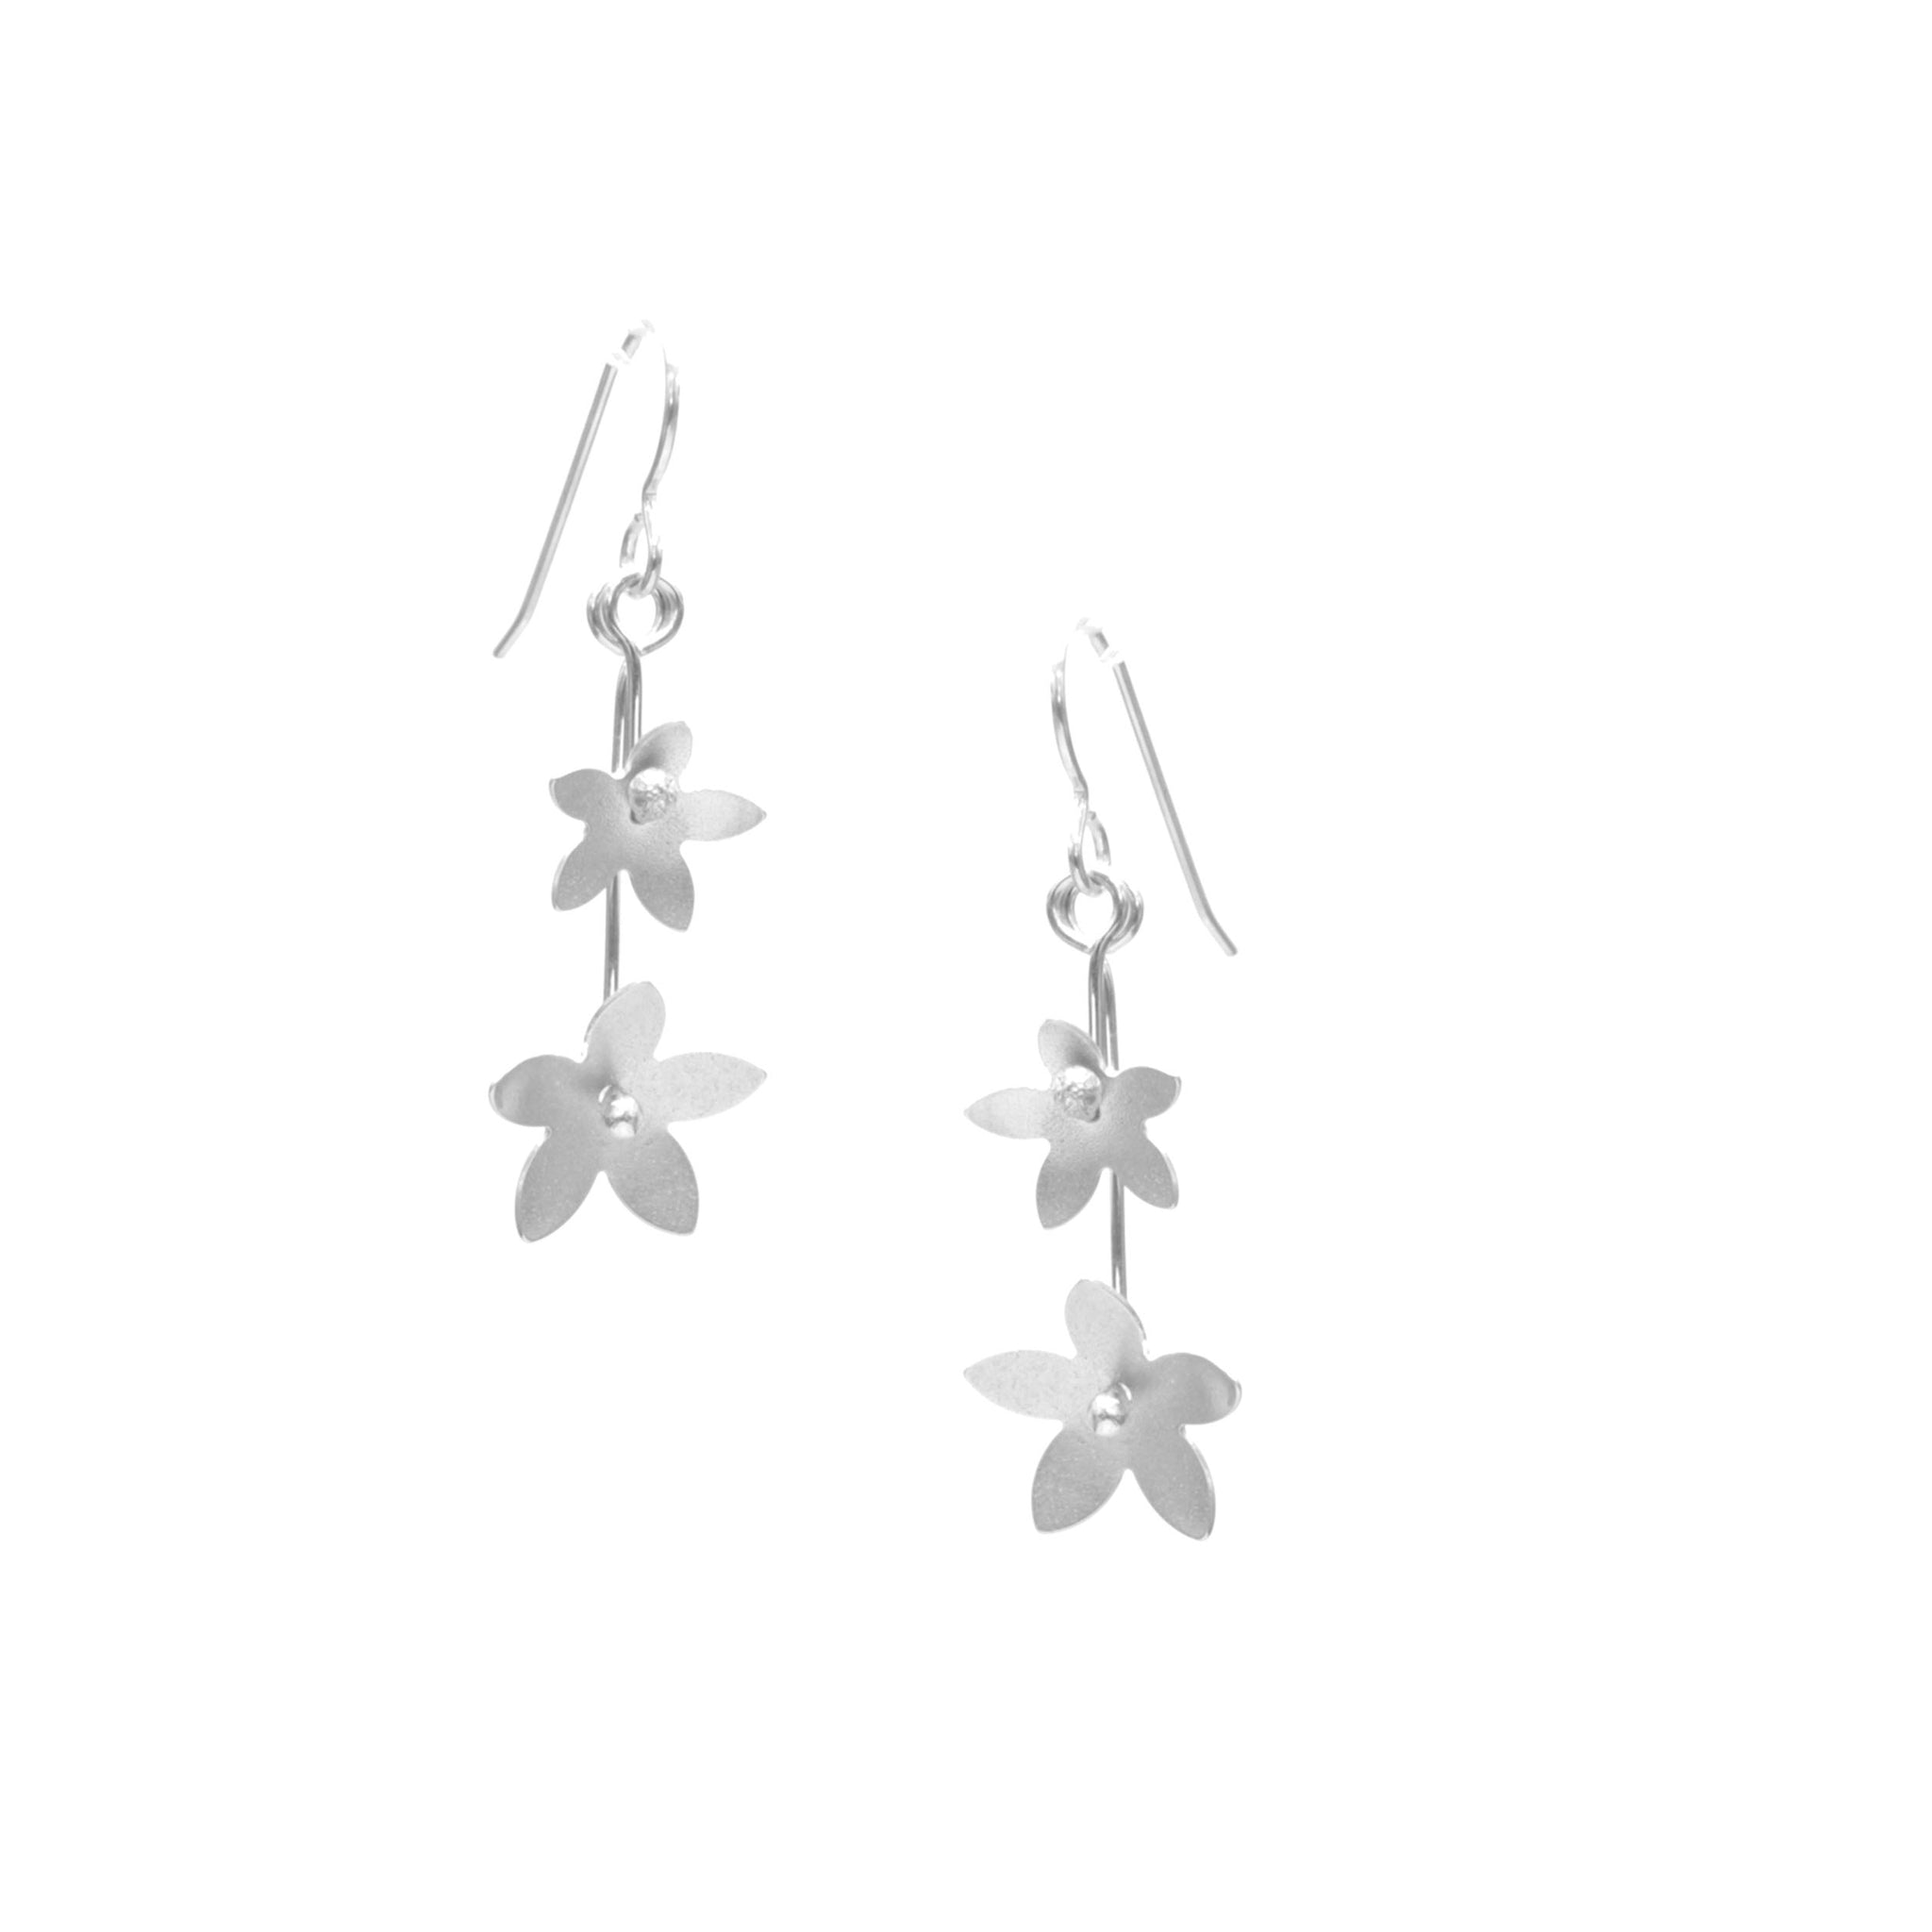 Jasmine Earrings, Double Blossom Drop